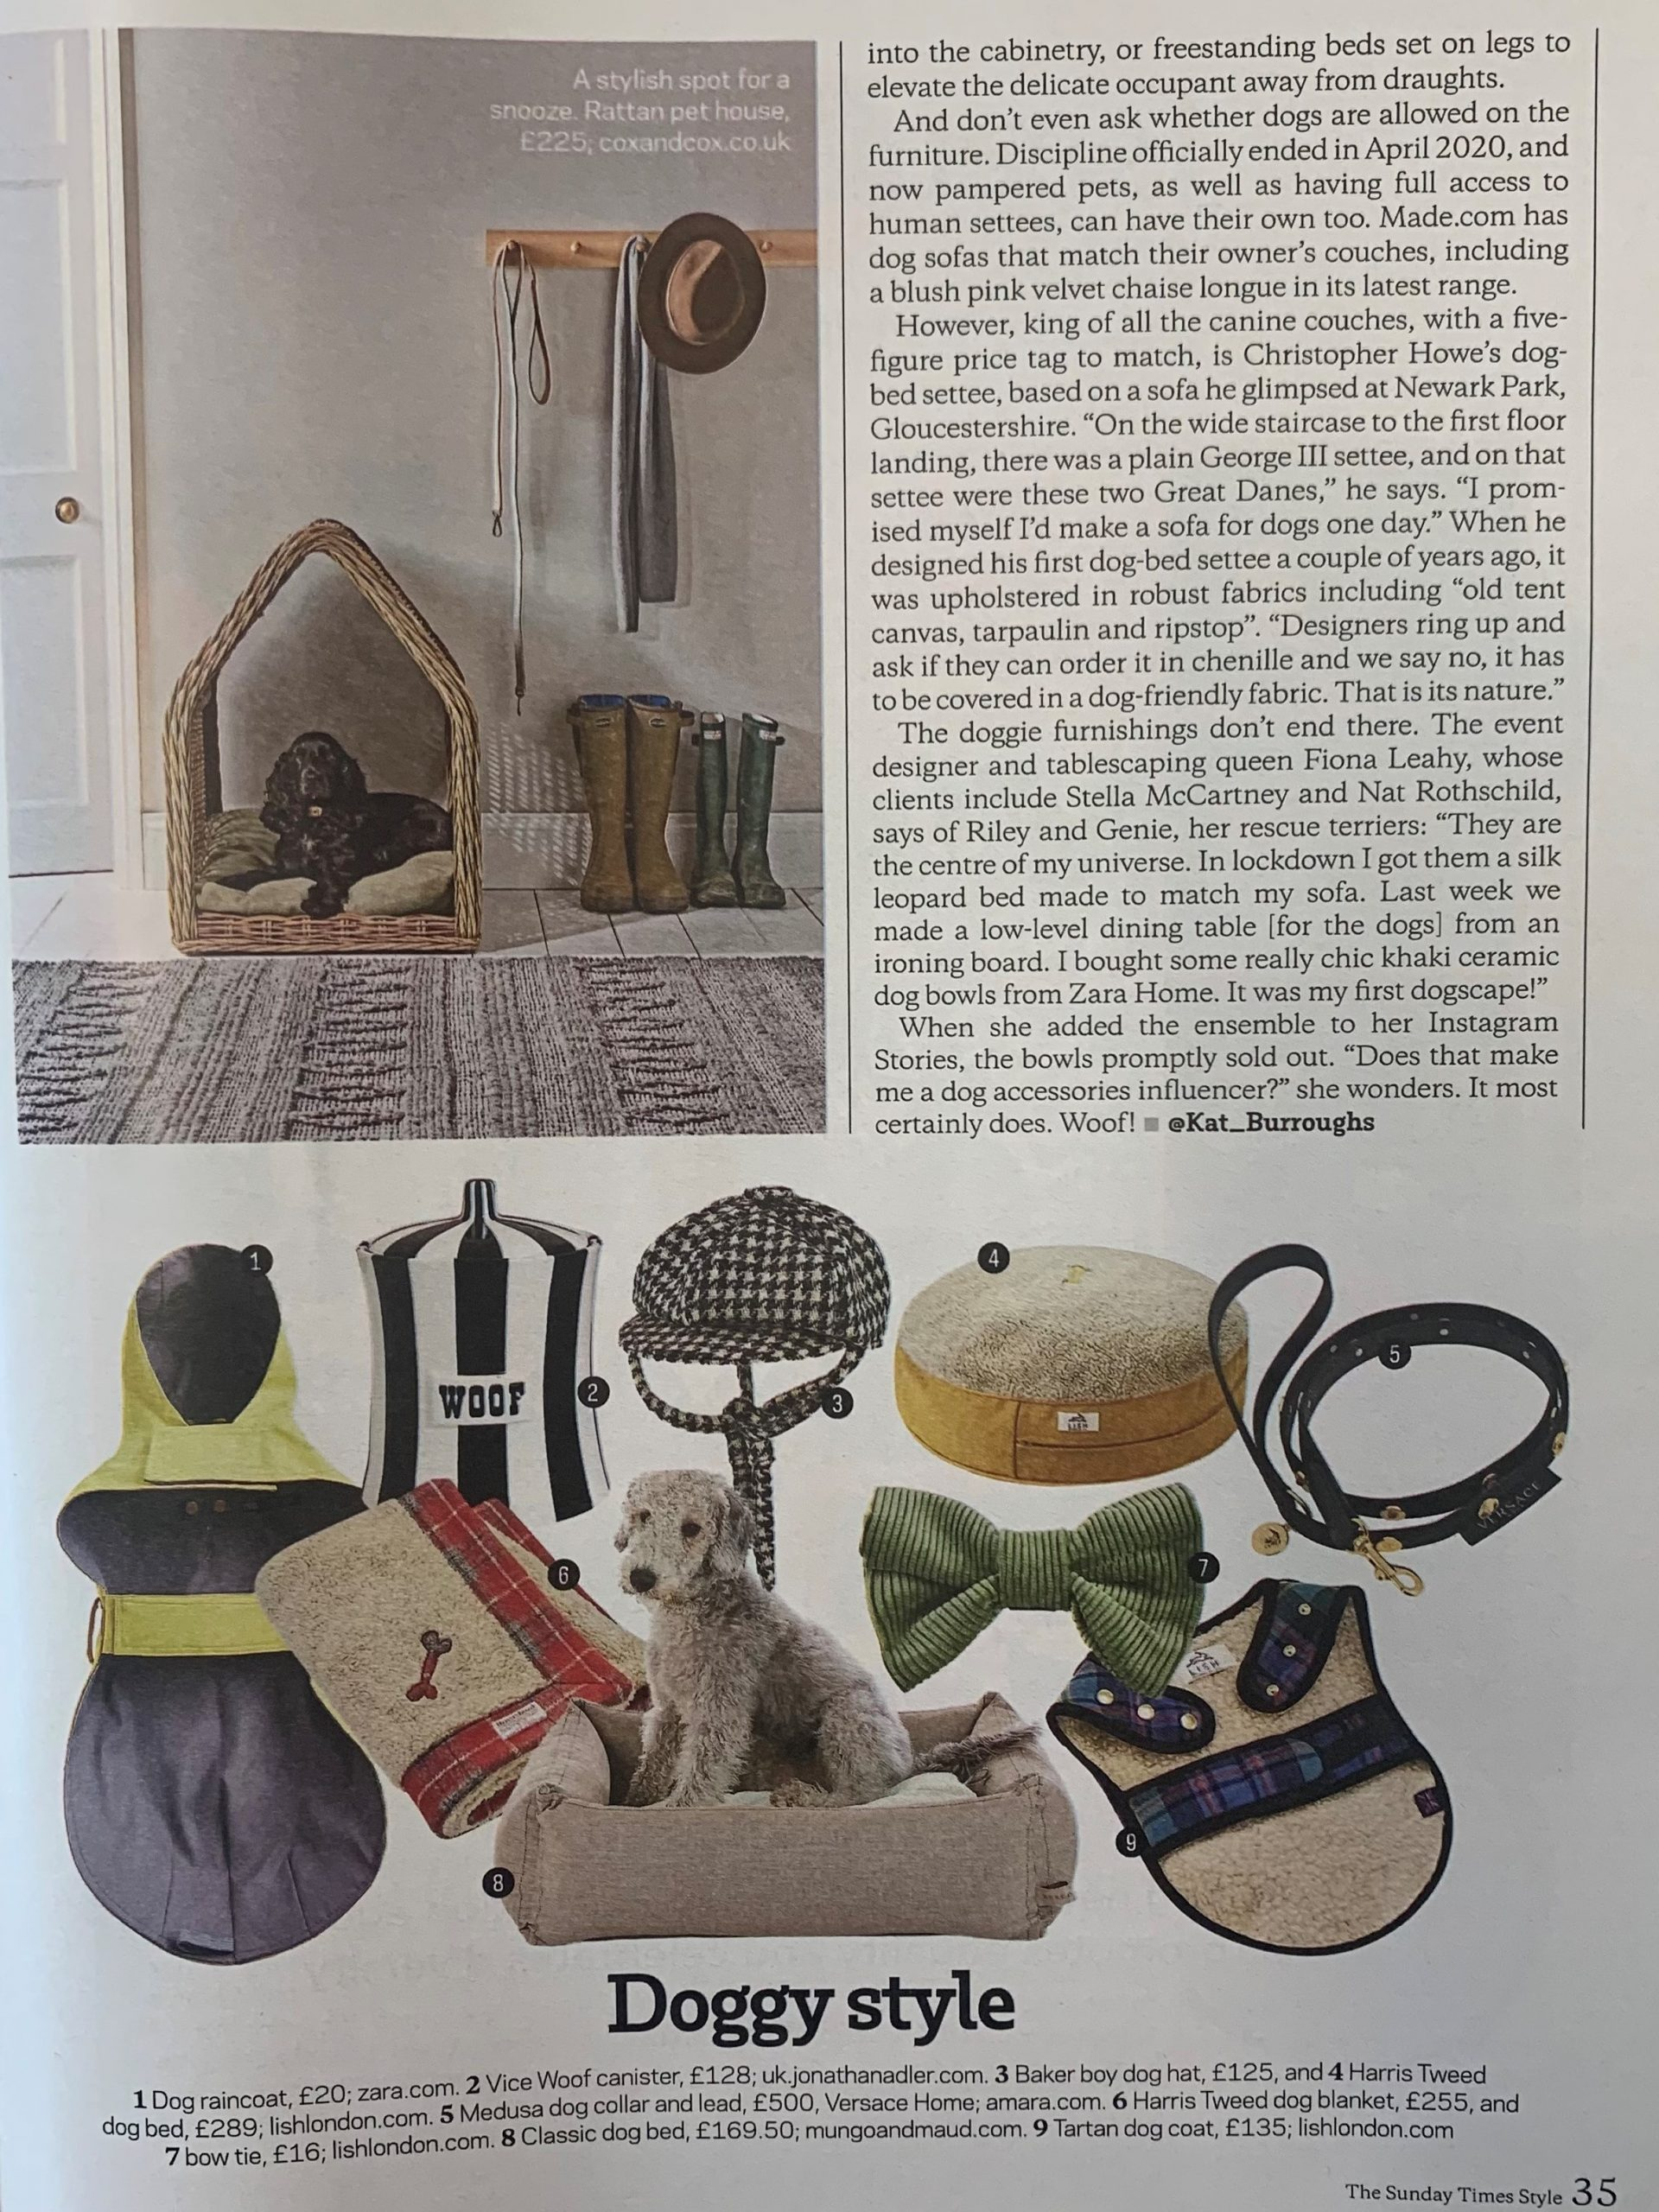 Sunday Times Style are striving for peak pooch with Jonathan Adler's iconic Woof vice canister